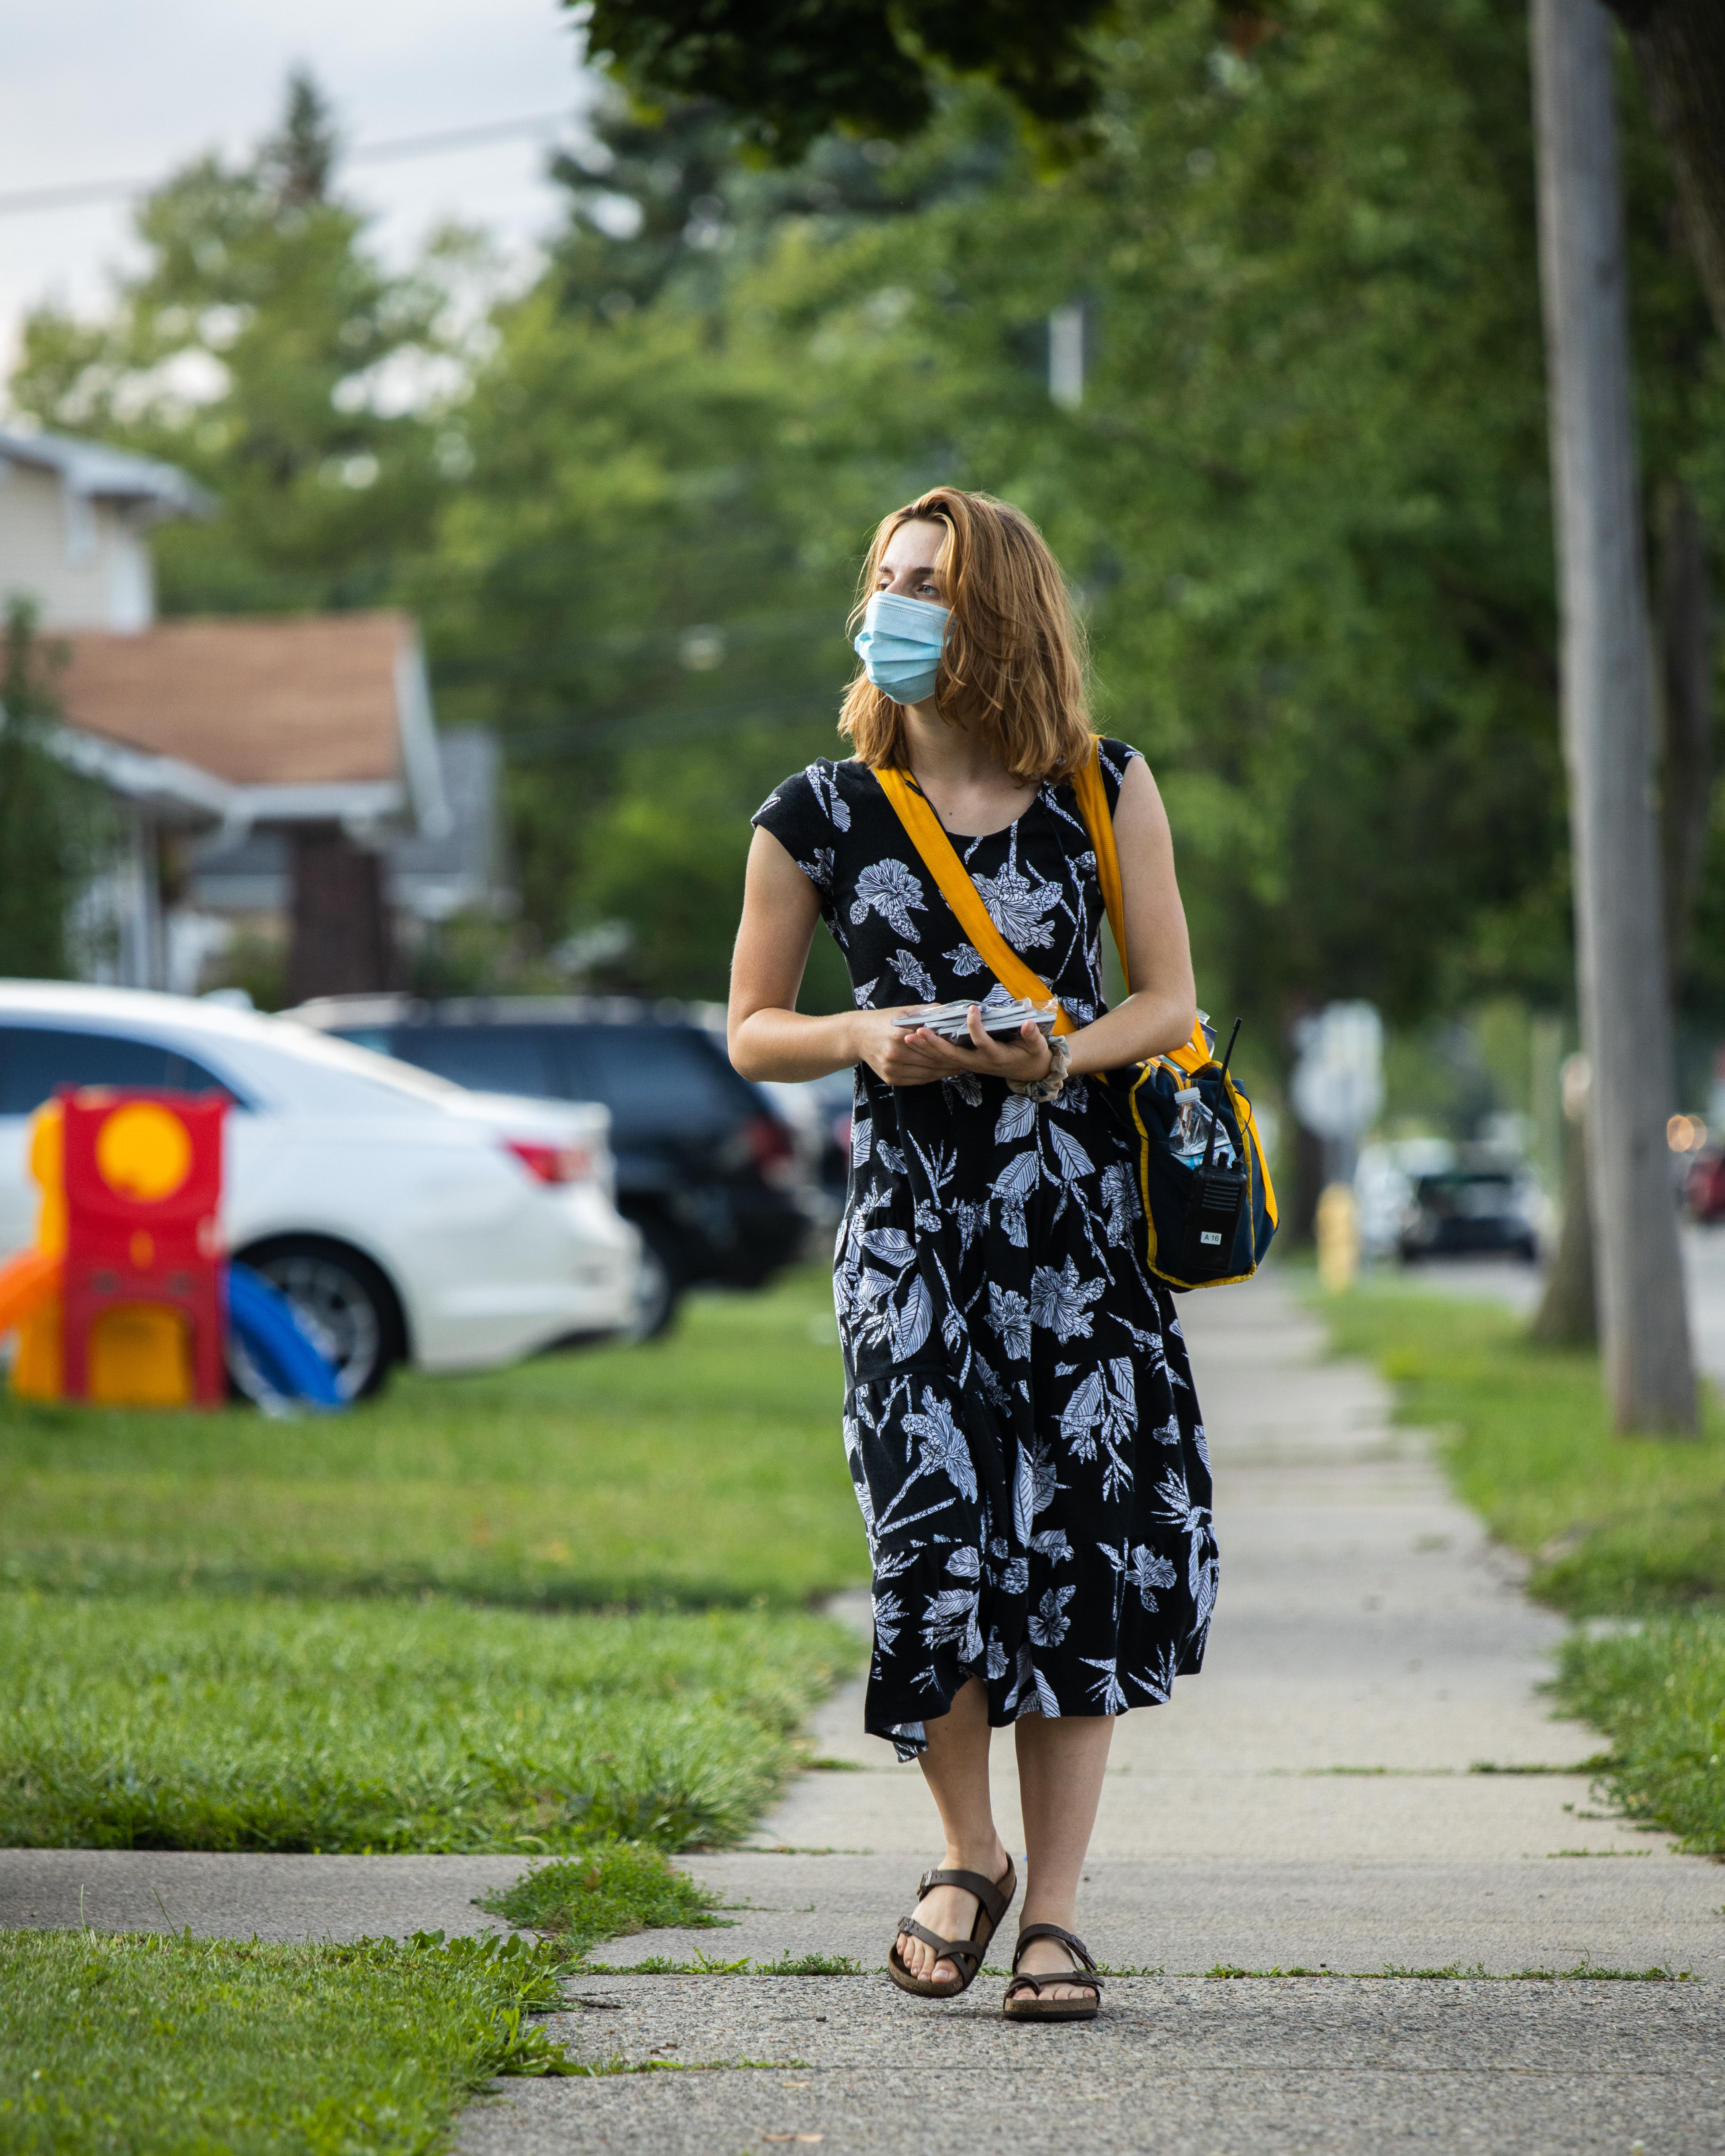 Michigan Youth Rush member canvasses in a neighborhood in Dearborn, Michigan – home to the largest population of Arab Americans in the United States.